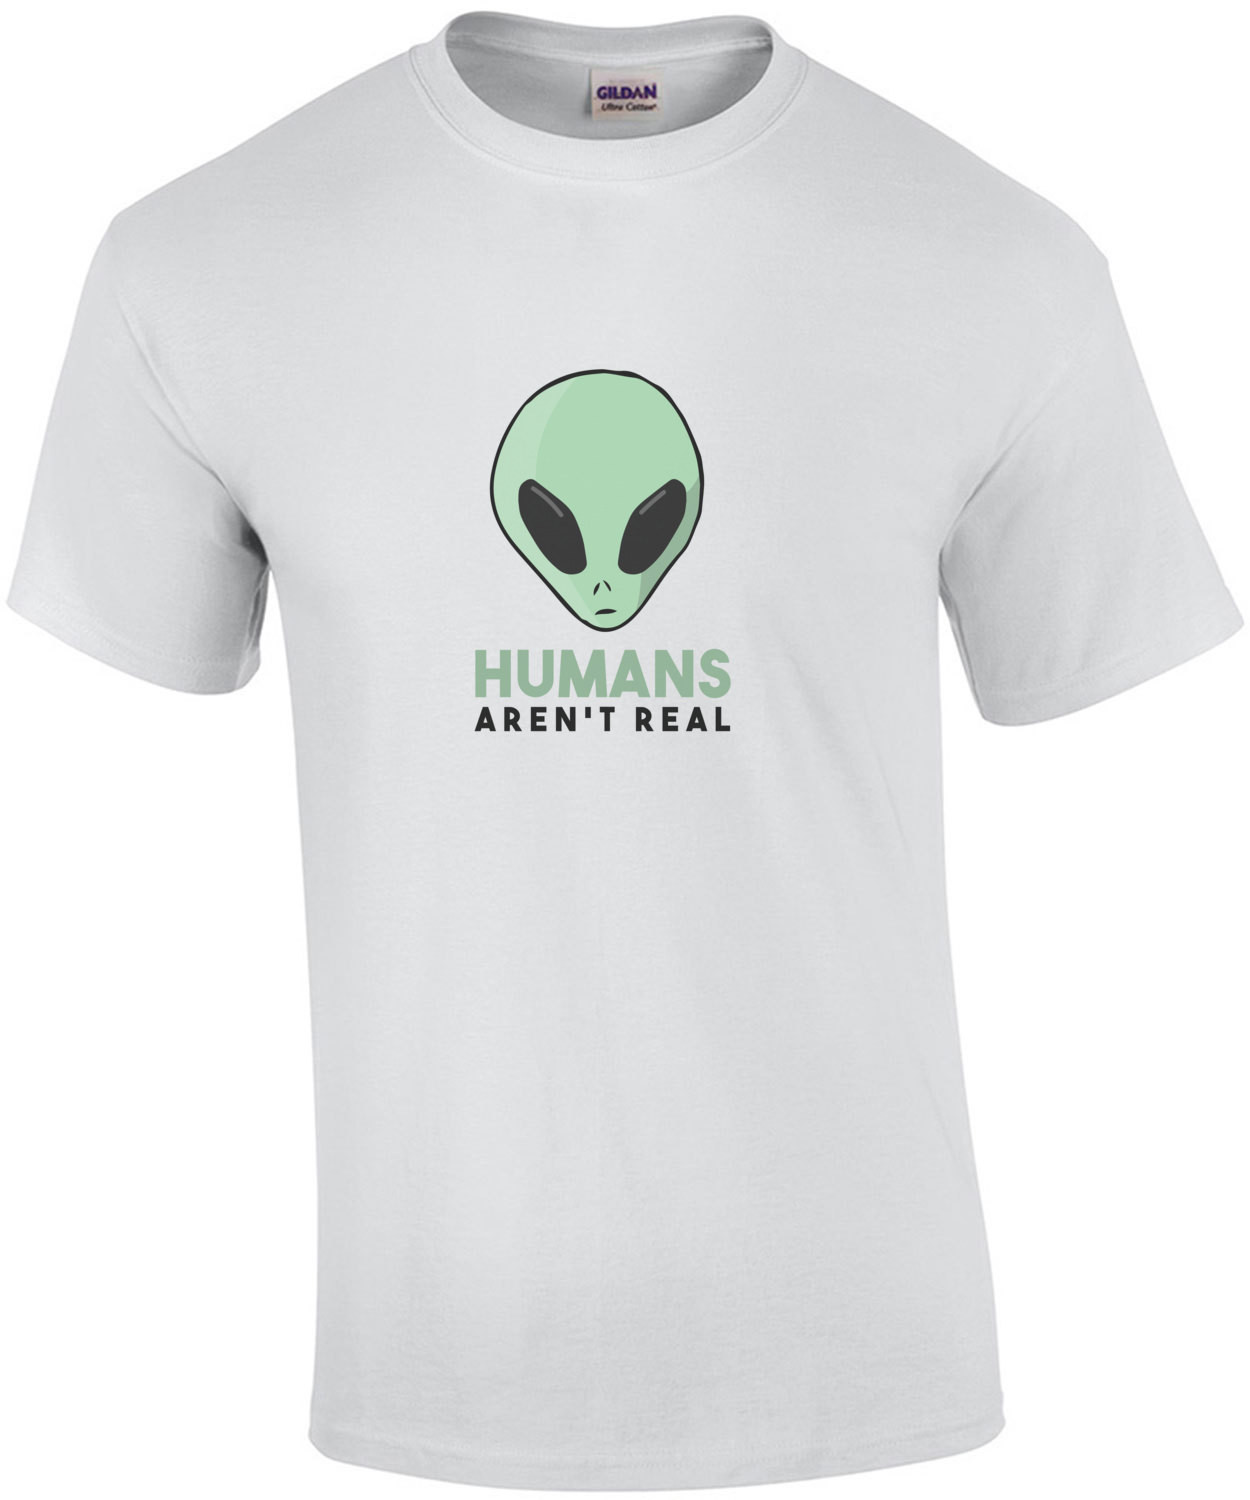 Humans Arent Real Funny Alien T-Shirt